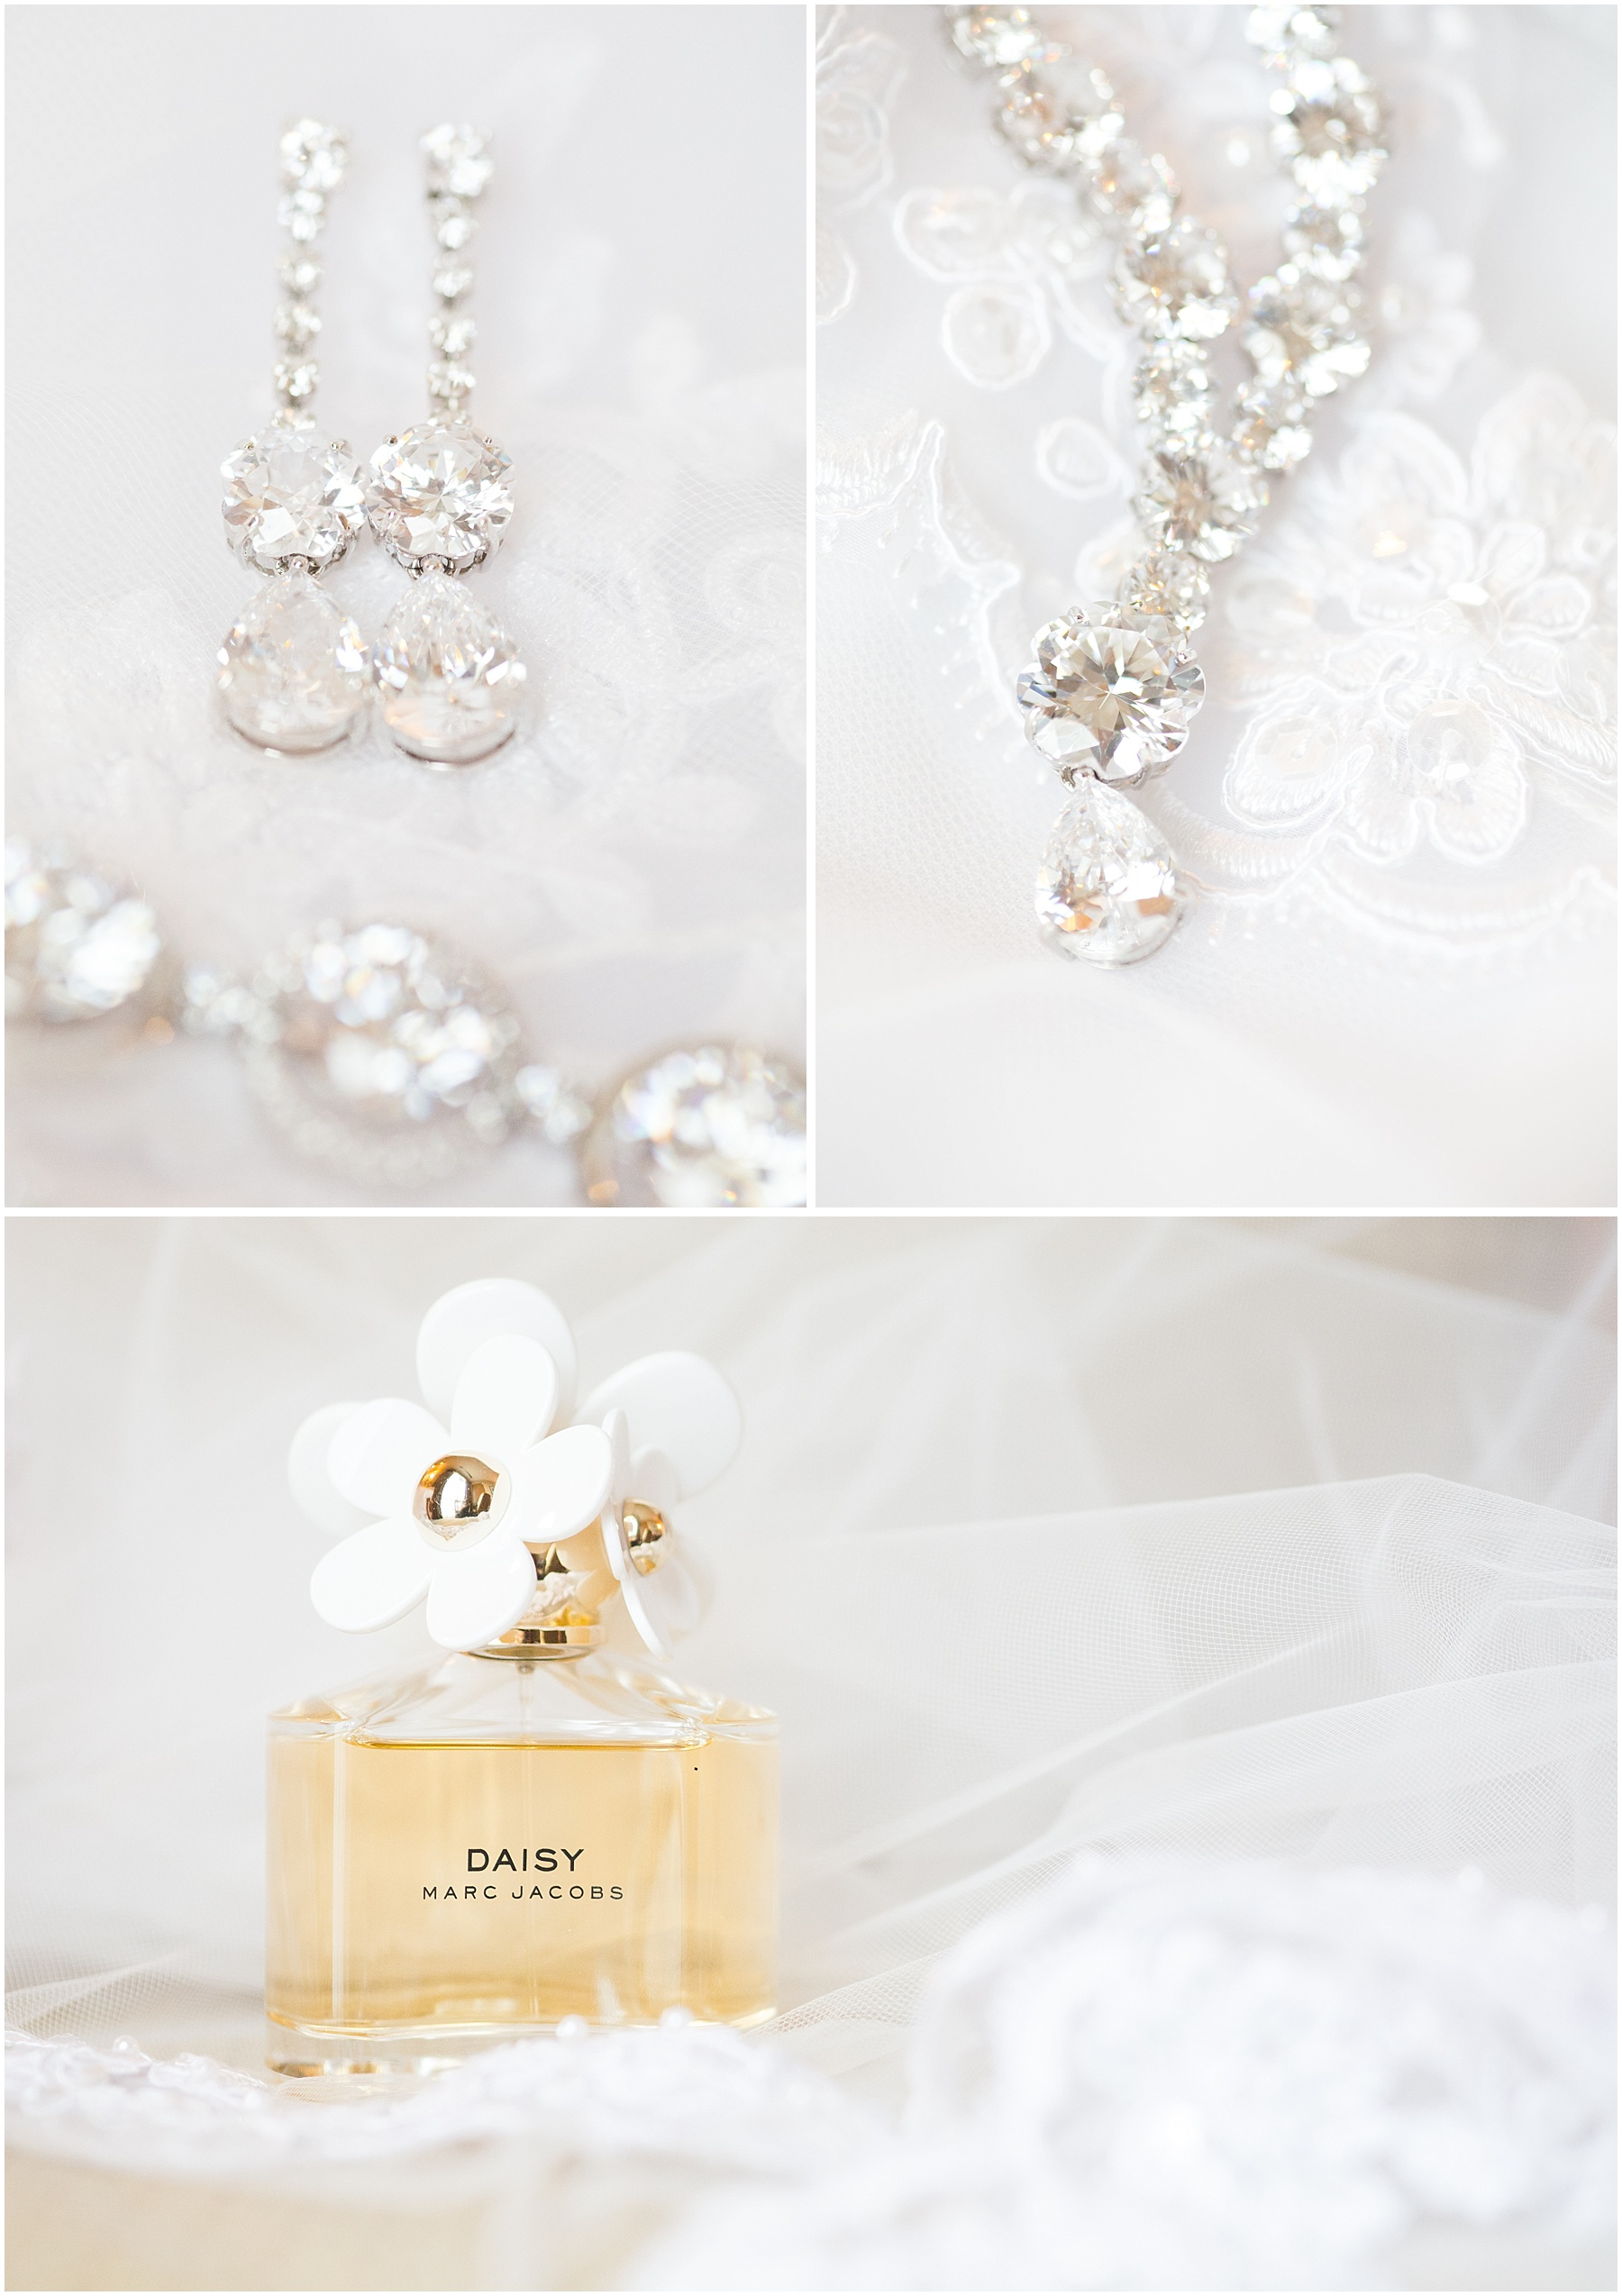 styled bridal jewelry details inspiration perfume Calgary wedding photography